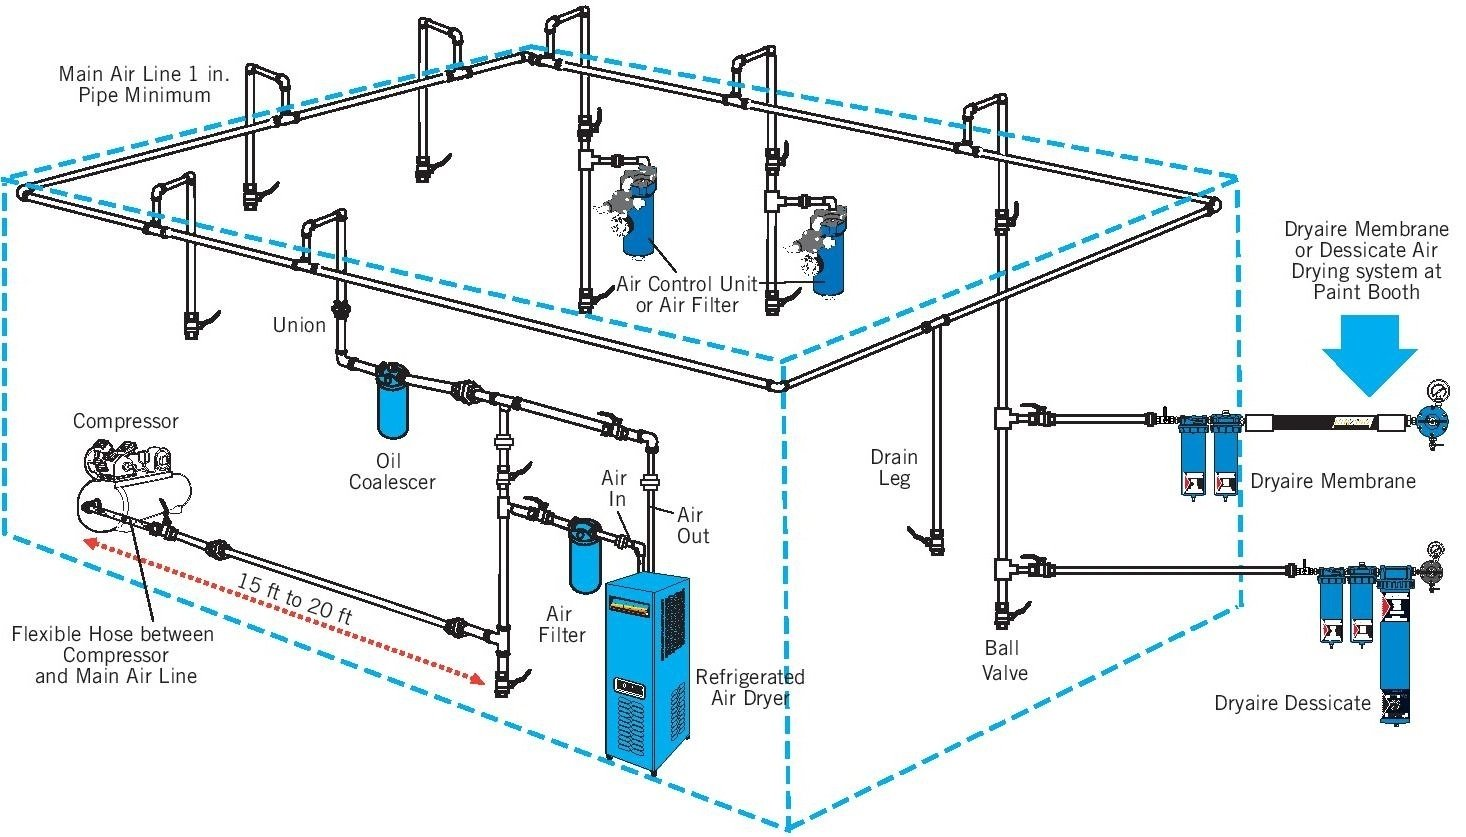 Air compressor plumbing diagram for Plumbing schematic